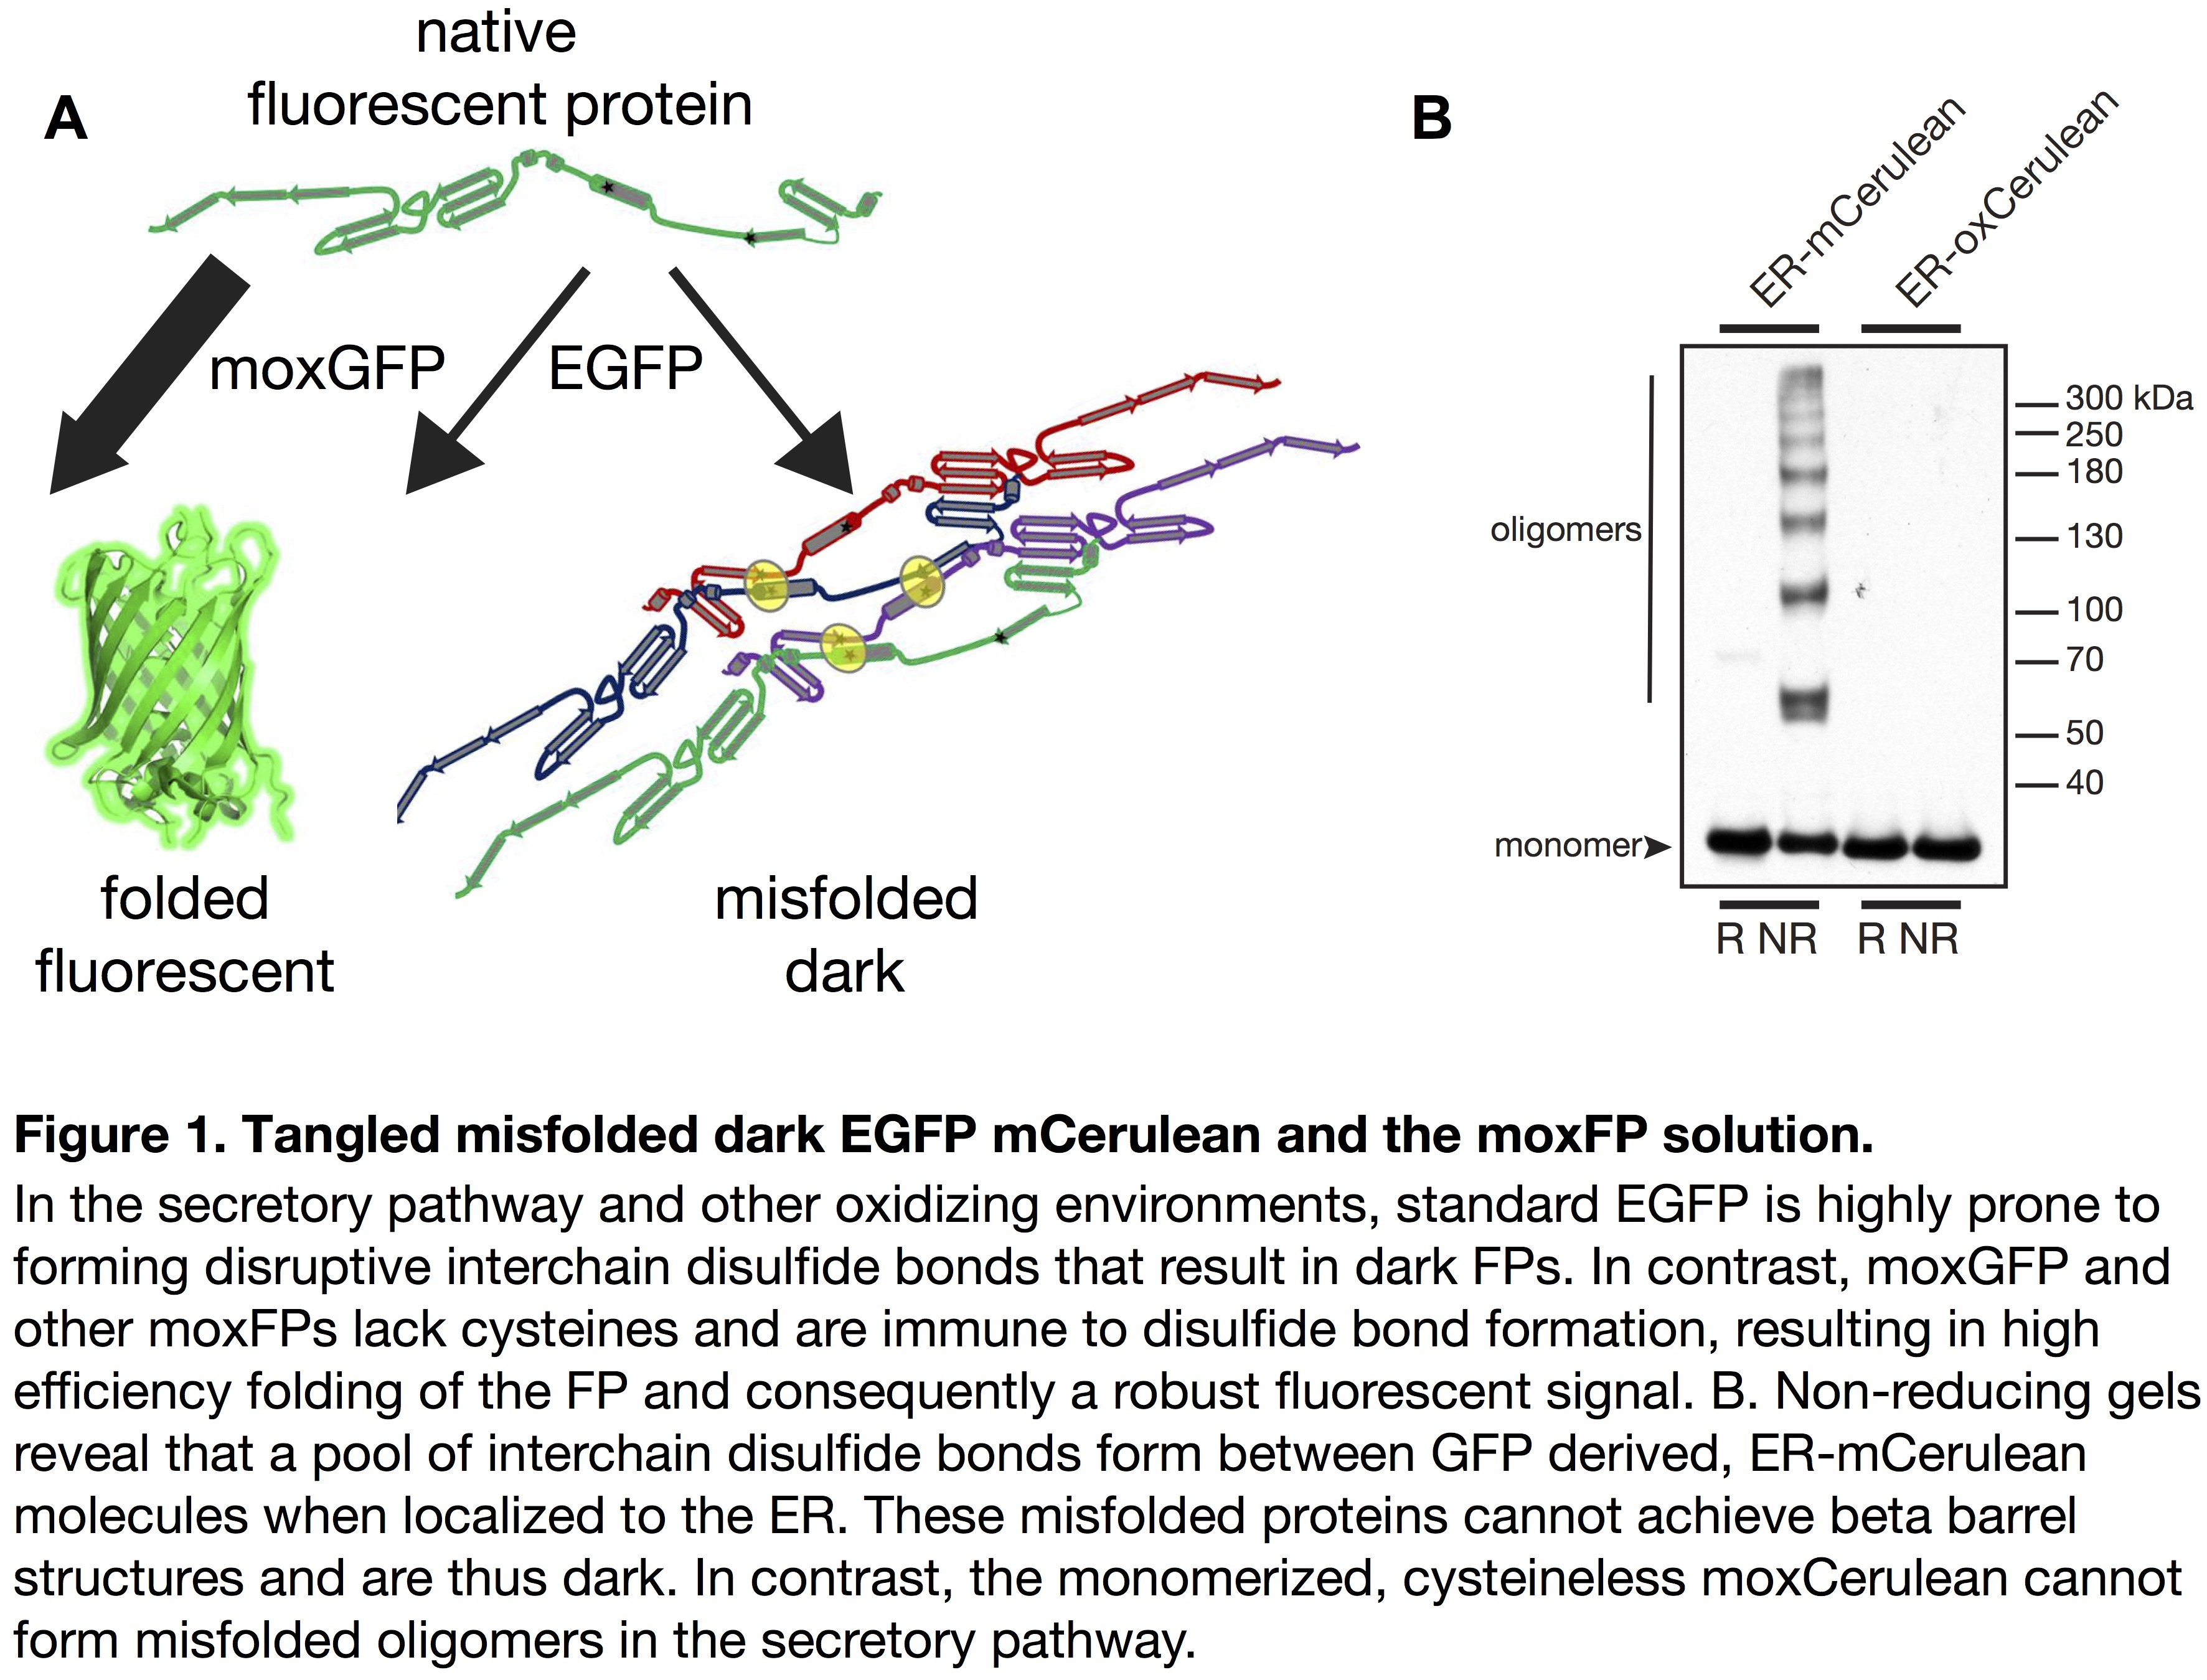 Fluorescent protein misfolding and disulfide bond formation leads to the productions of non-functional fluorescent proteins